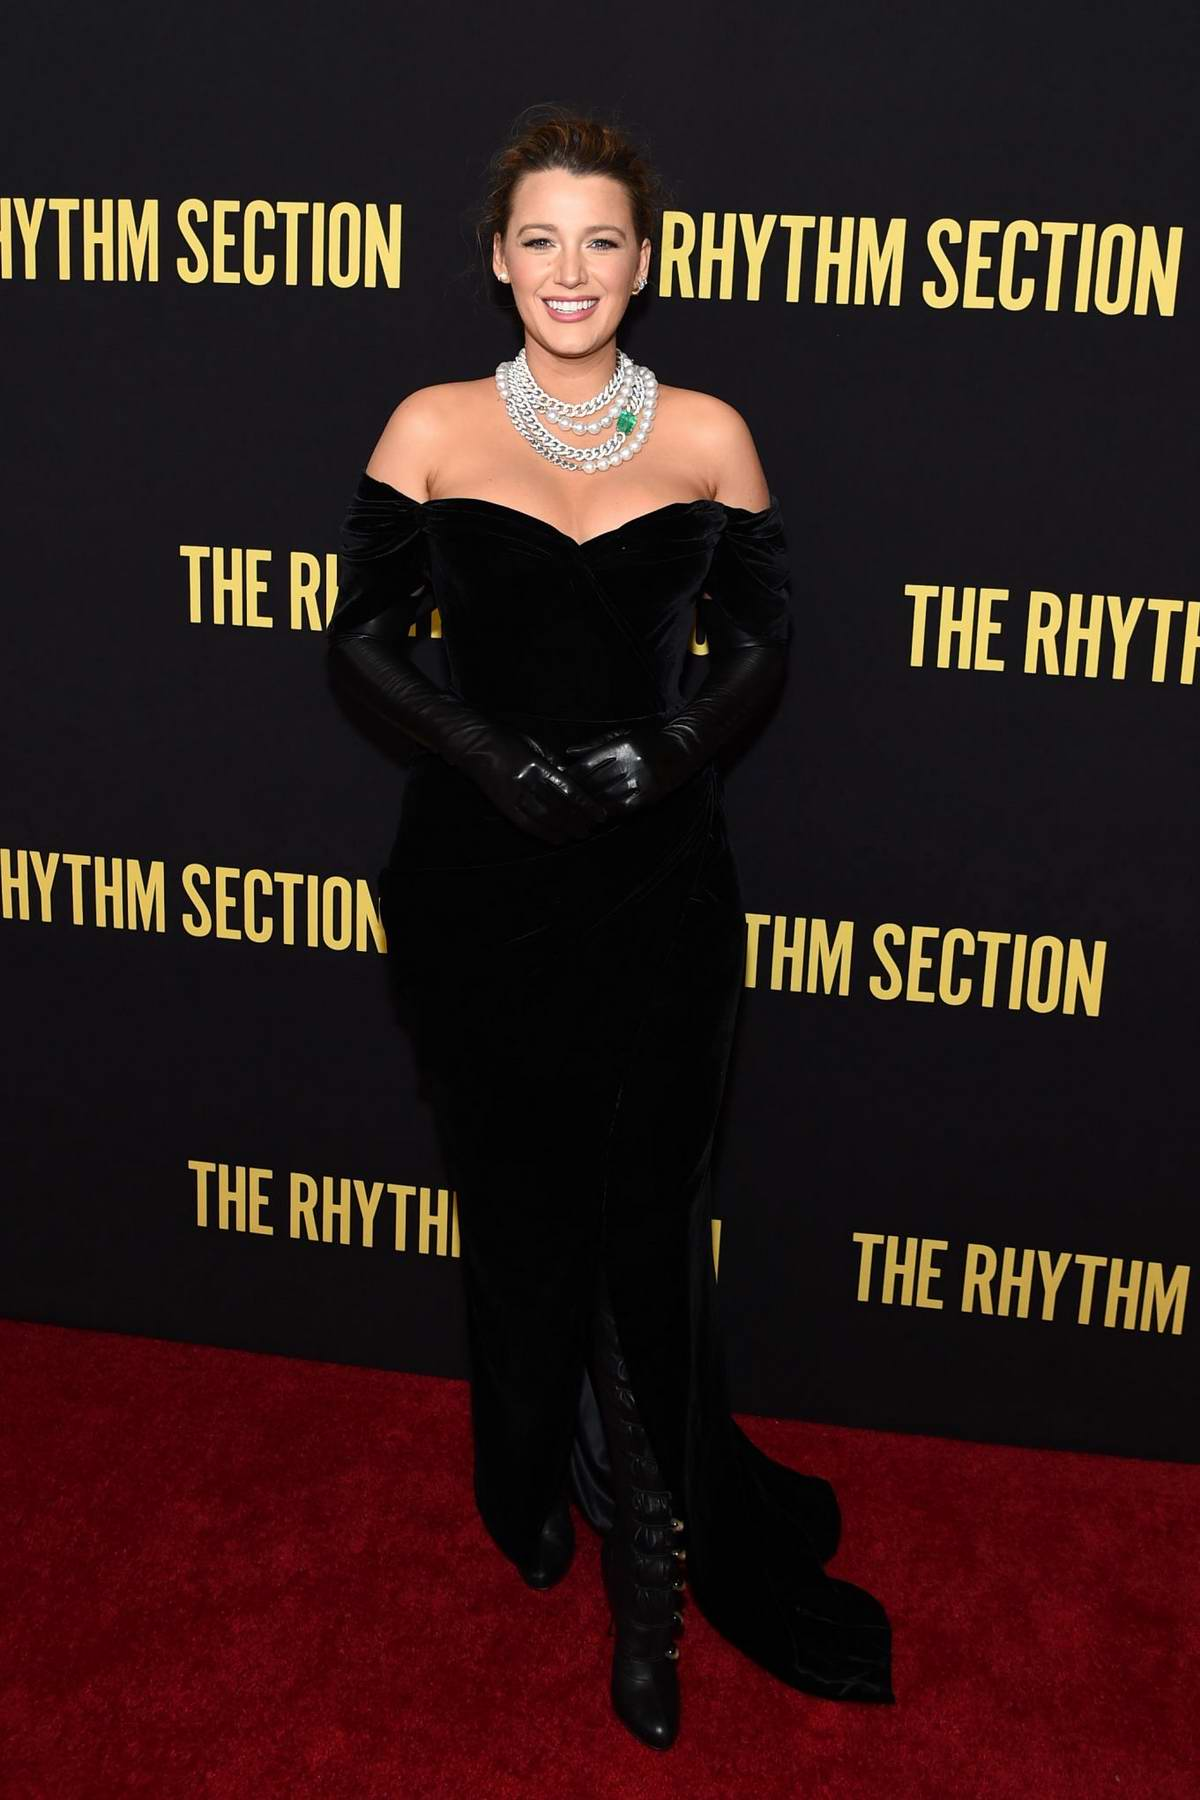 Blake Lively attends the screening of 'The Rhythm Section' in New York City